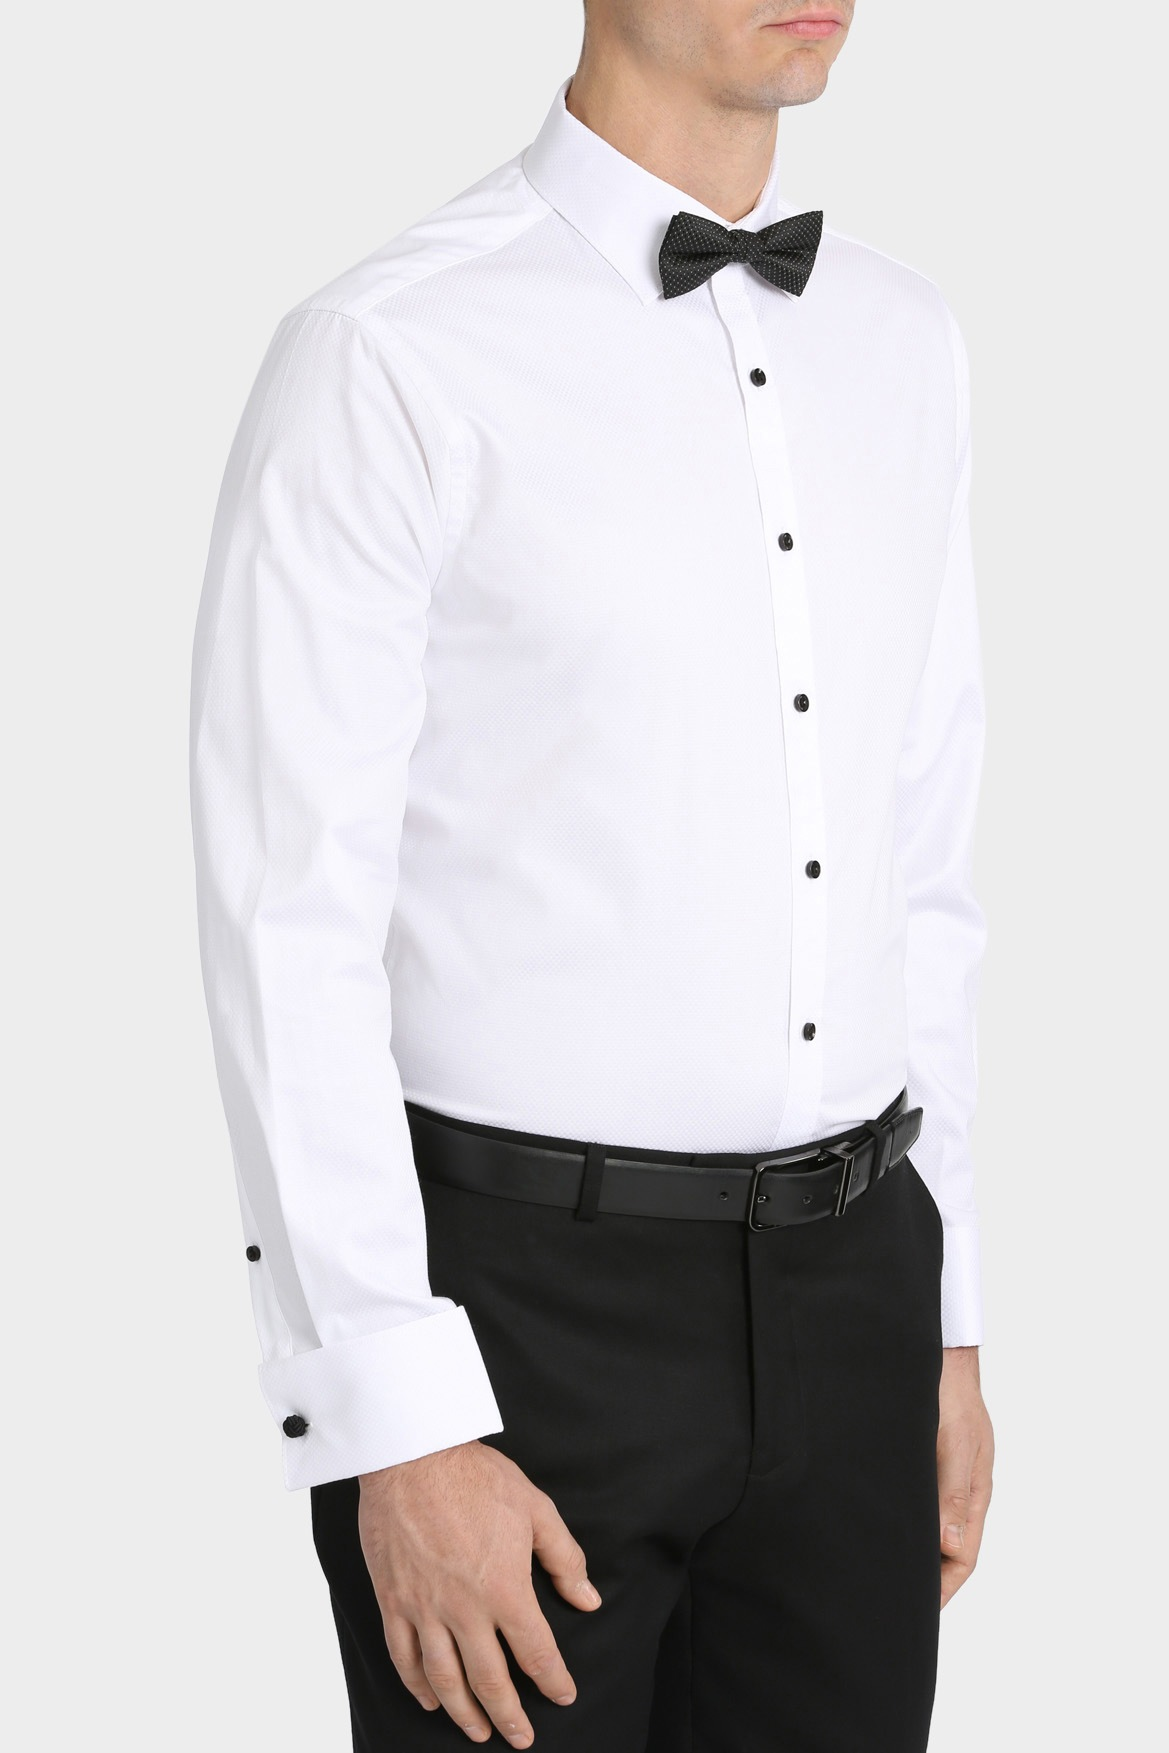 blaq tailored fit dinner business shirt myer online